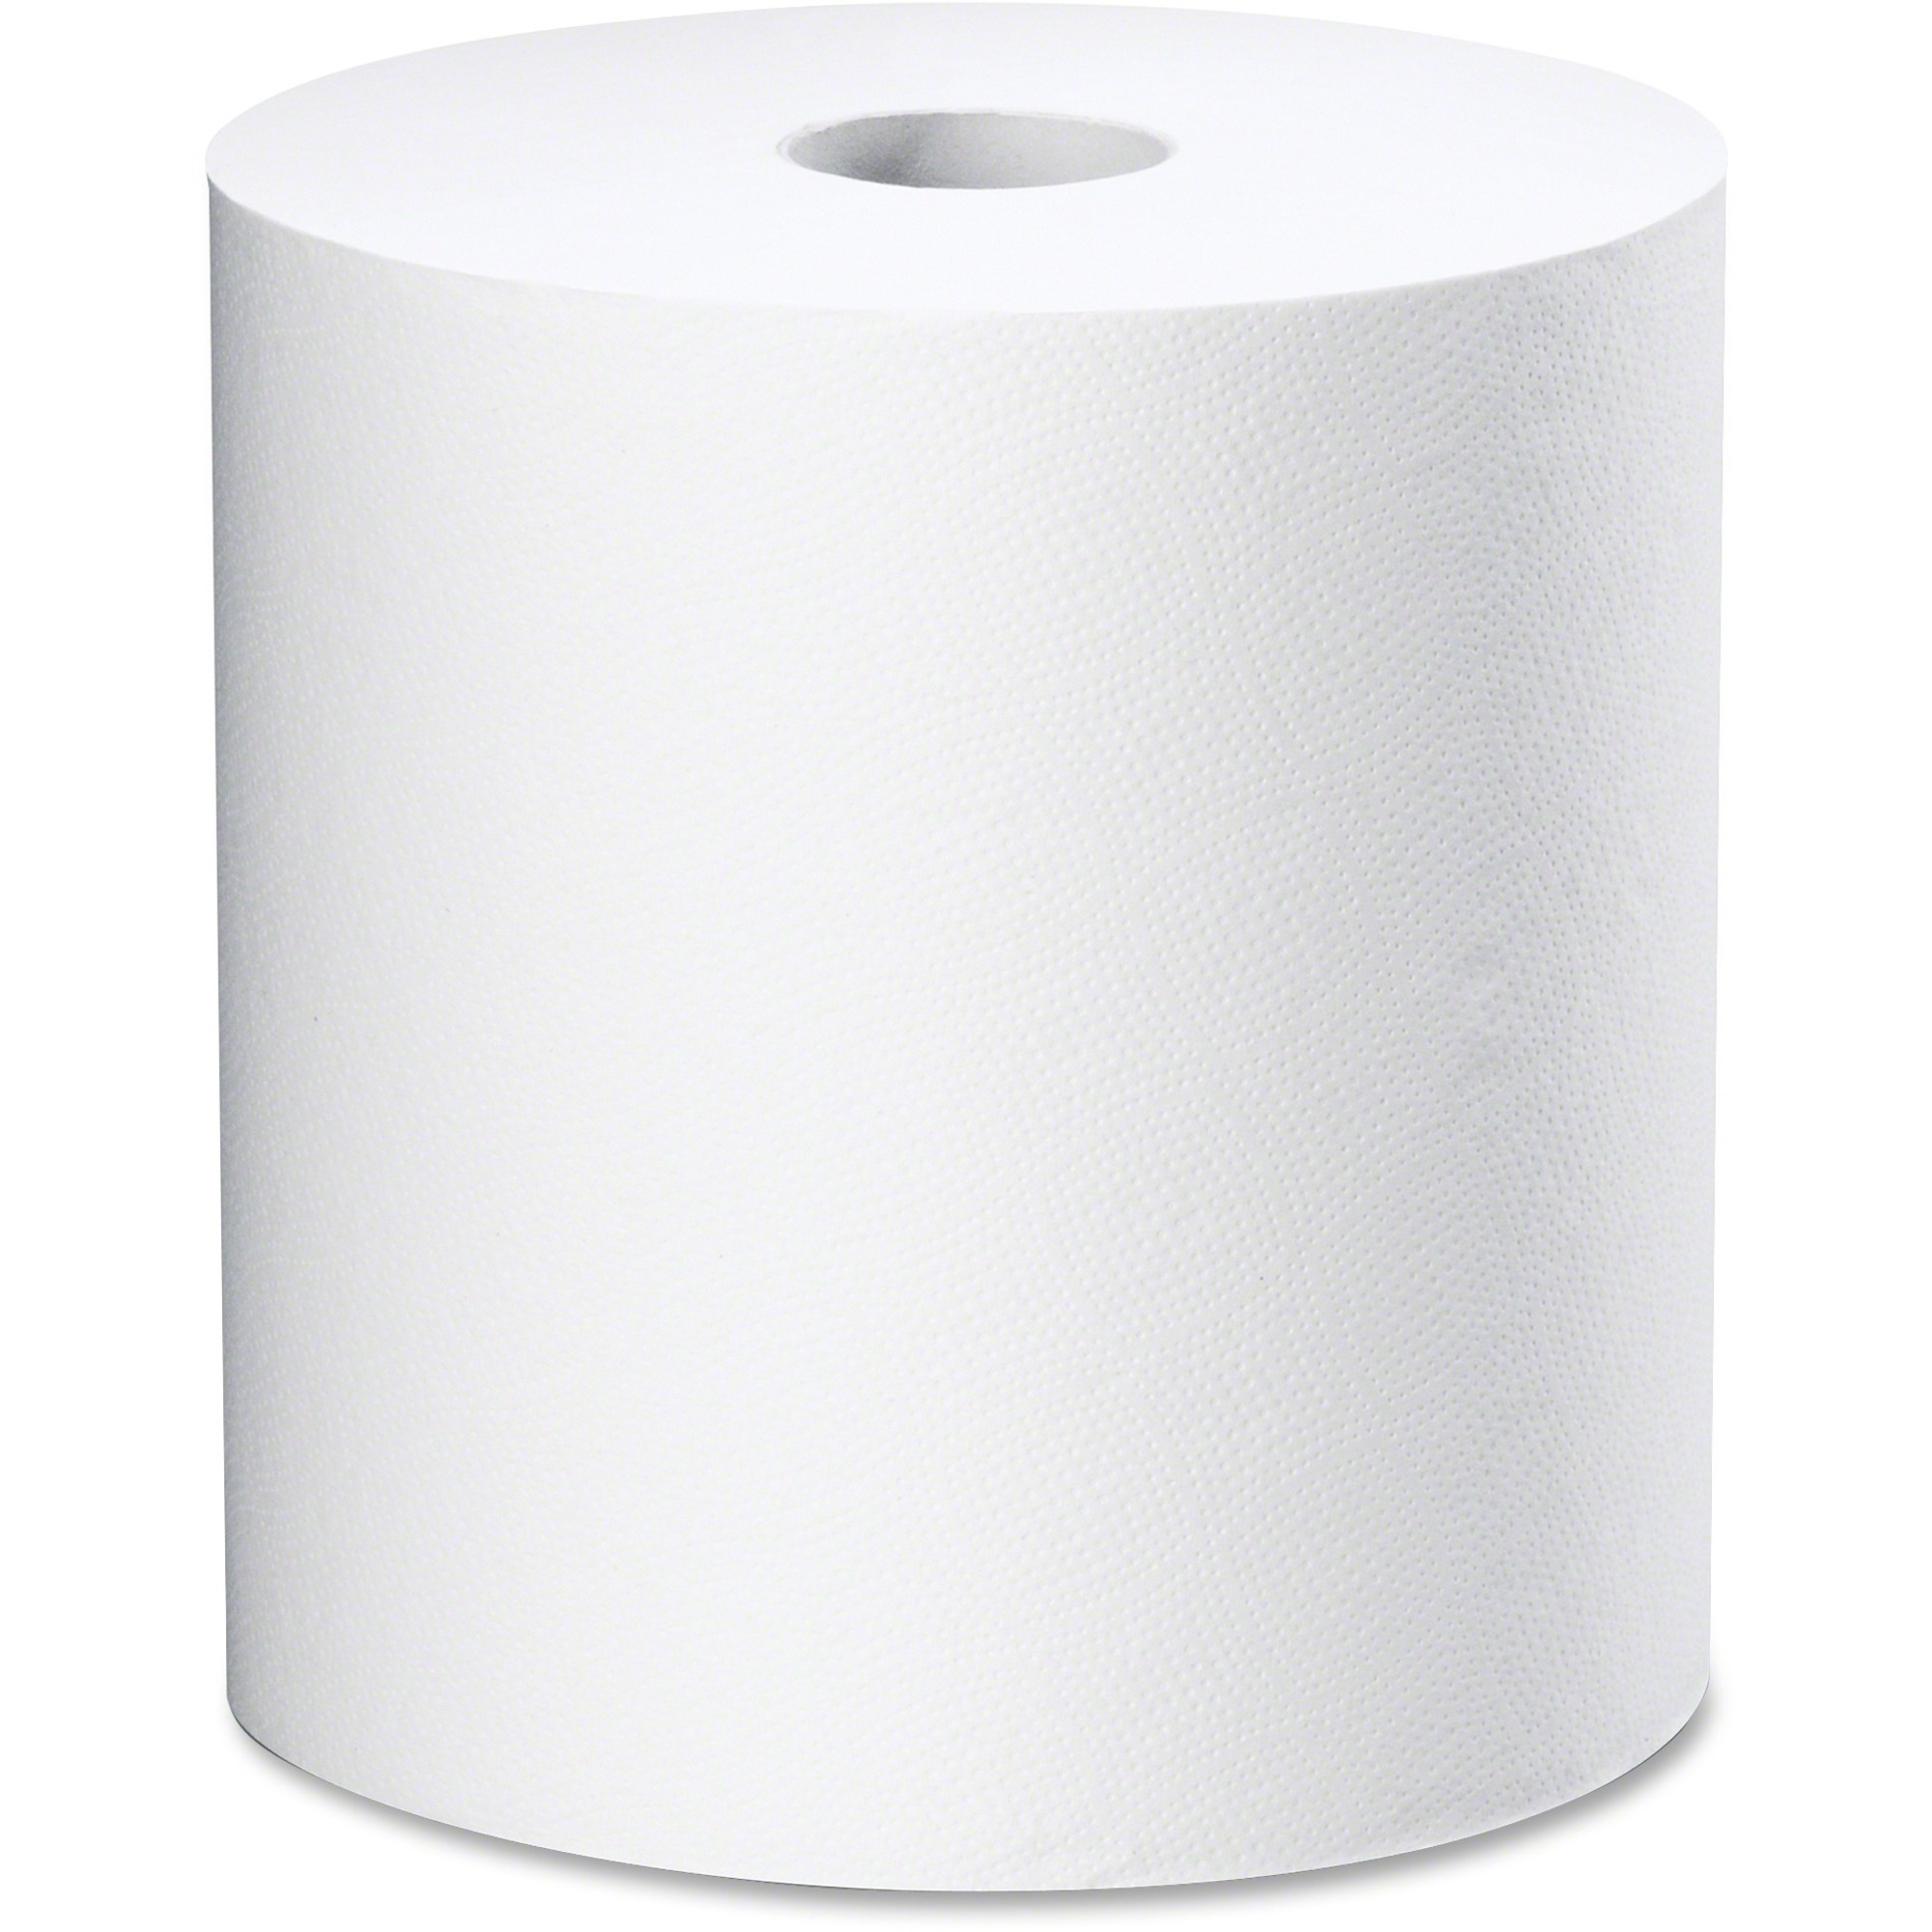 White Swan Long Roll Paper Towels 8 X 800 Ft Eco Friendly Absorbent Soft For Hand 6 Carton